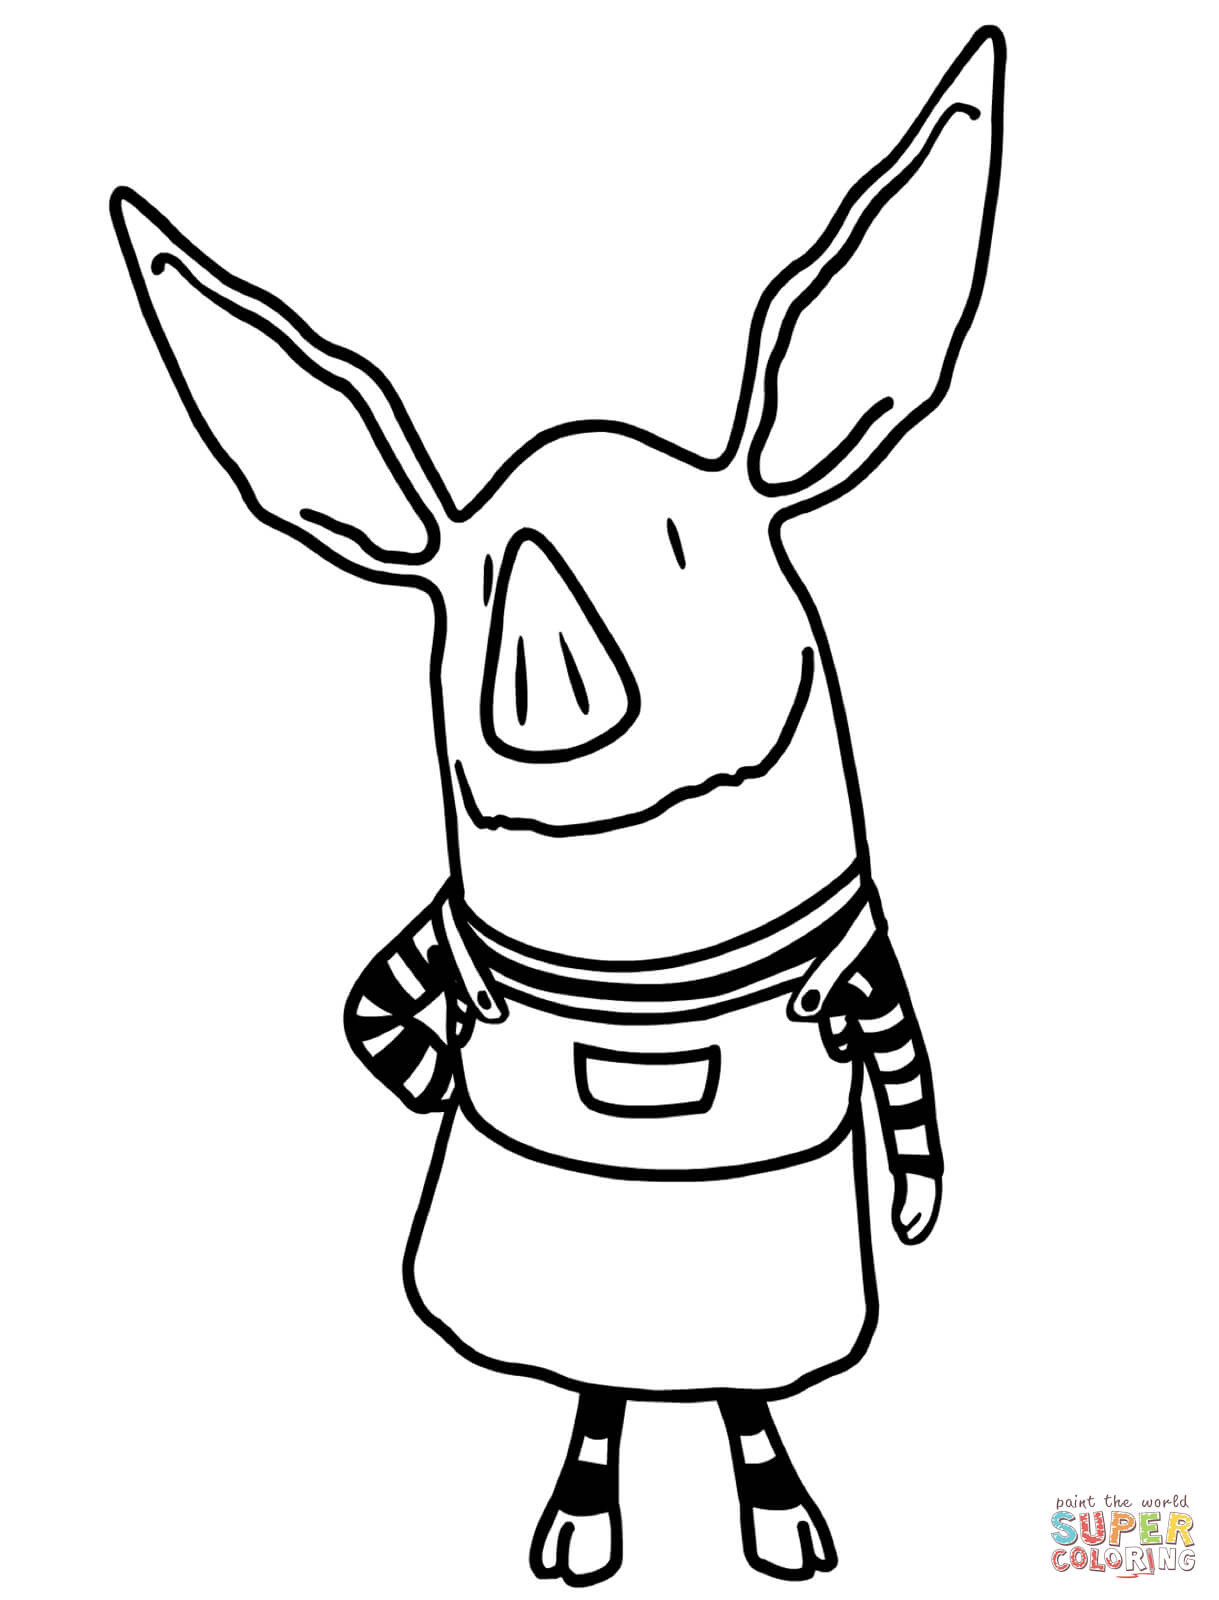 1219x1600 Coloring Pages Pigs Page Of Pig Face In Incredible